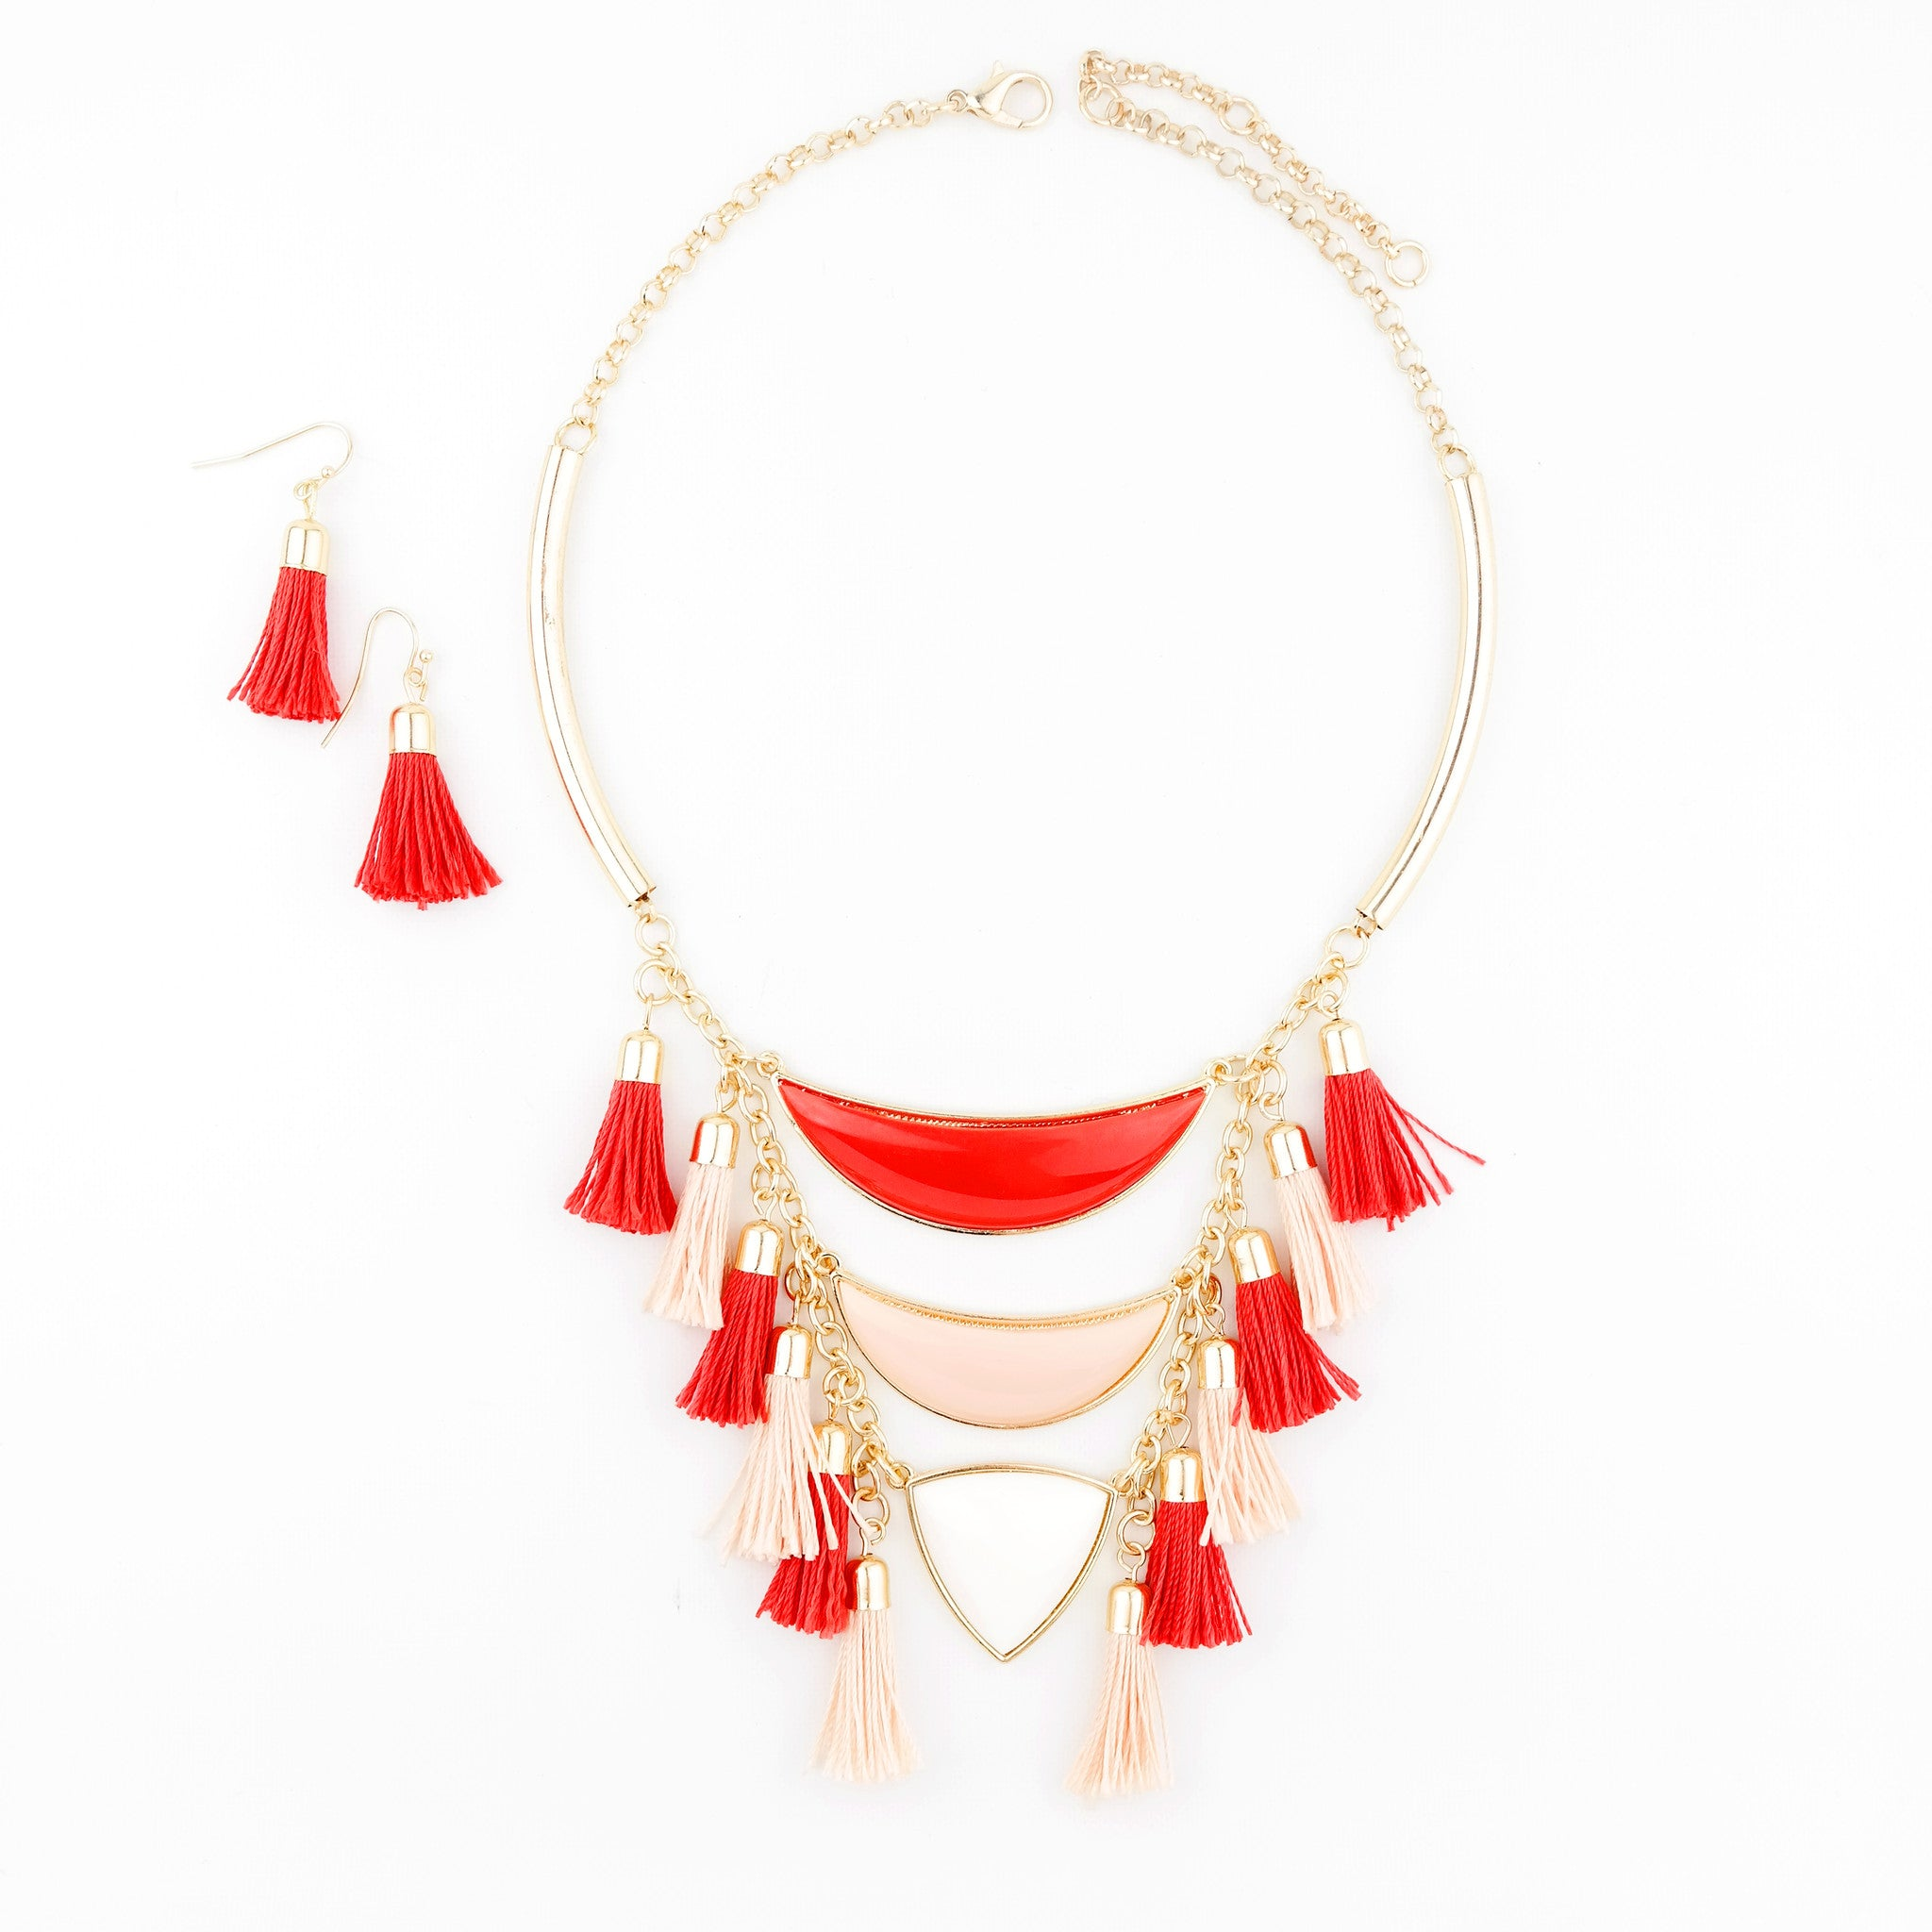 Red Tassel Necklace - hoopsbaby.com